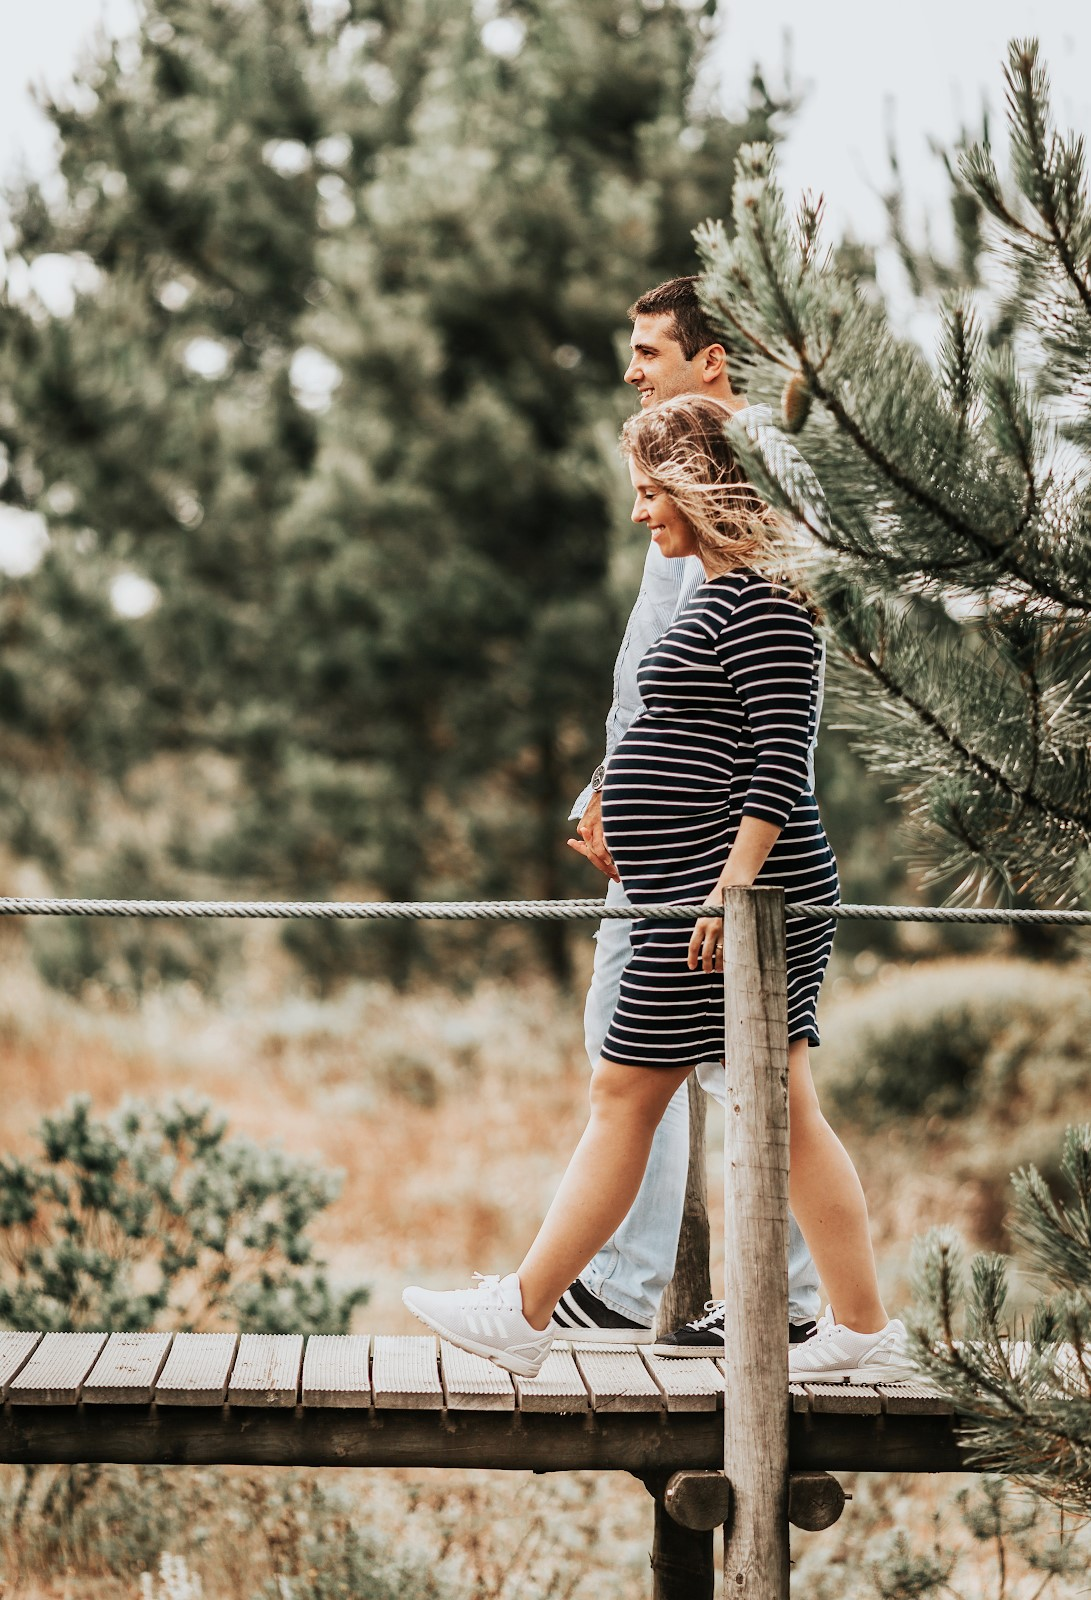 a couple walking along a wooden bridge holding hands. the woman is pregnant